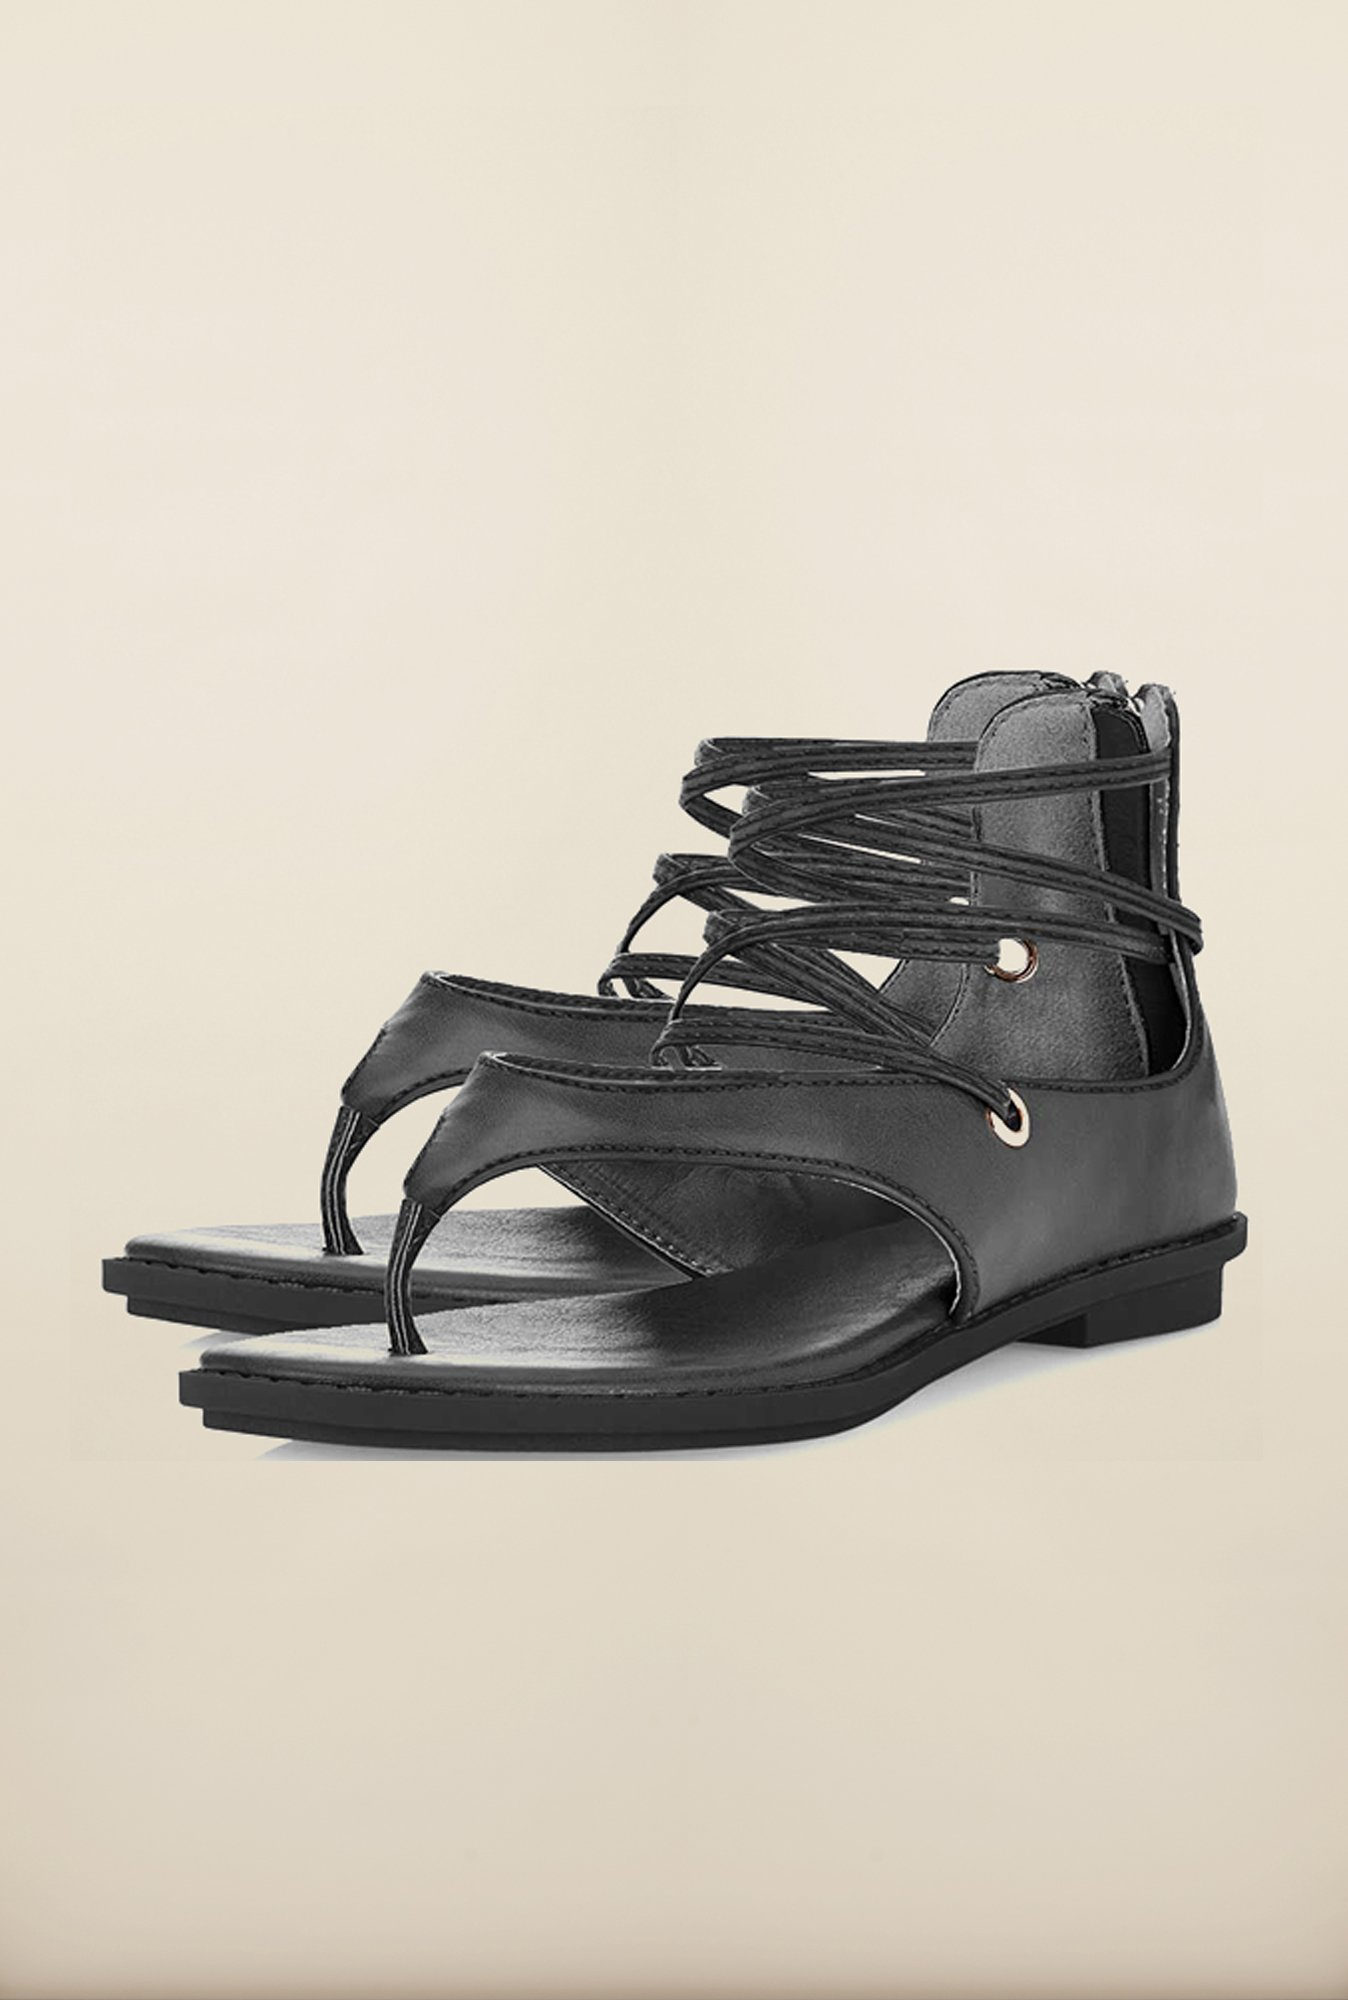 Tresmode Reparis Black Flat Sandals